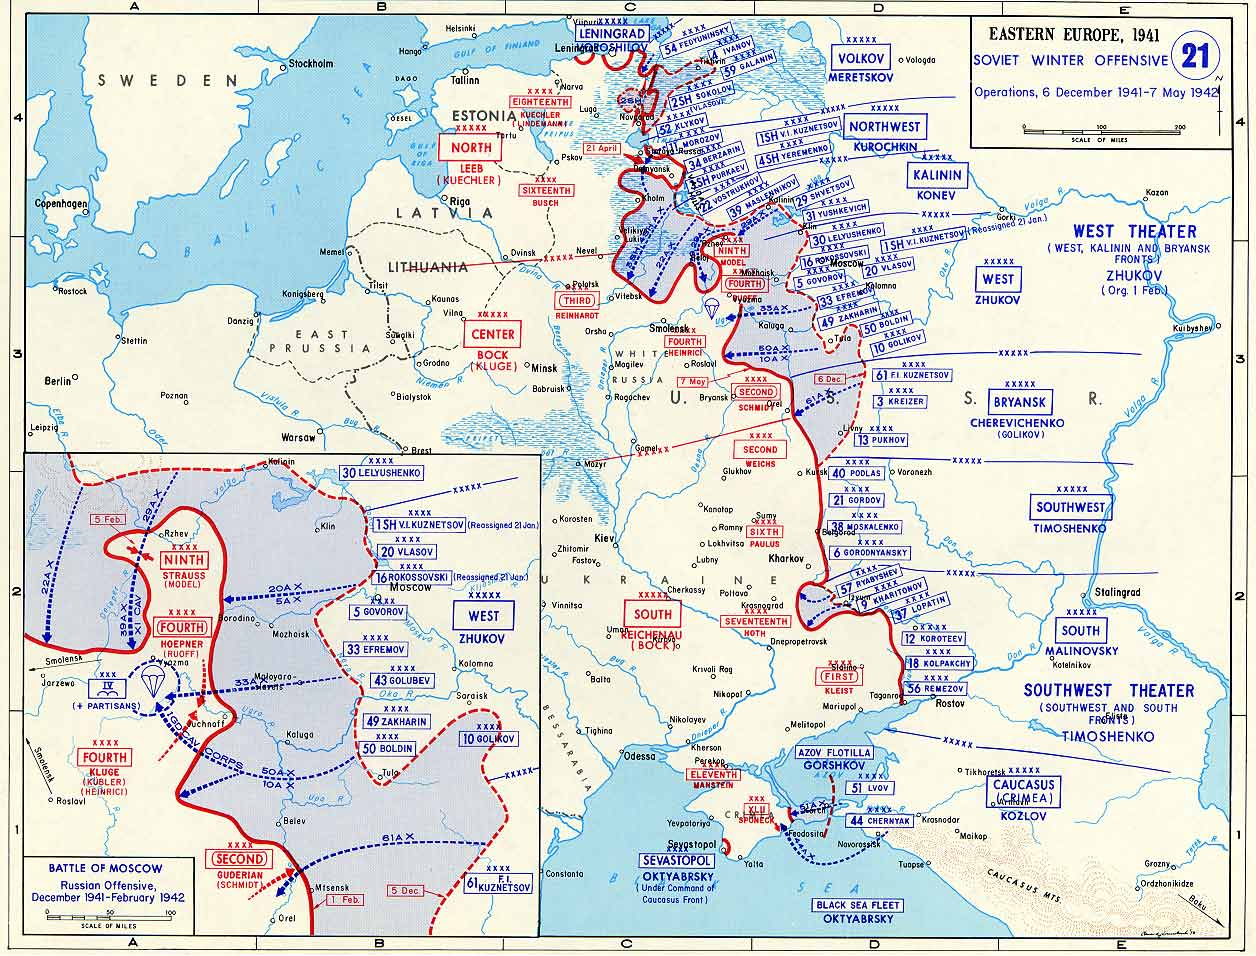 Map of soviet offensive against germany december 1941 may 1942 wwii war theatre maps soviet offensive against germany gumiabroncs Gallery